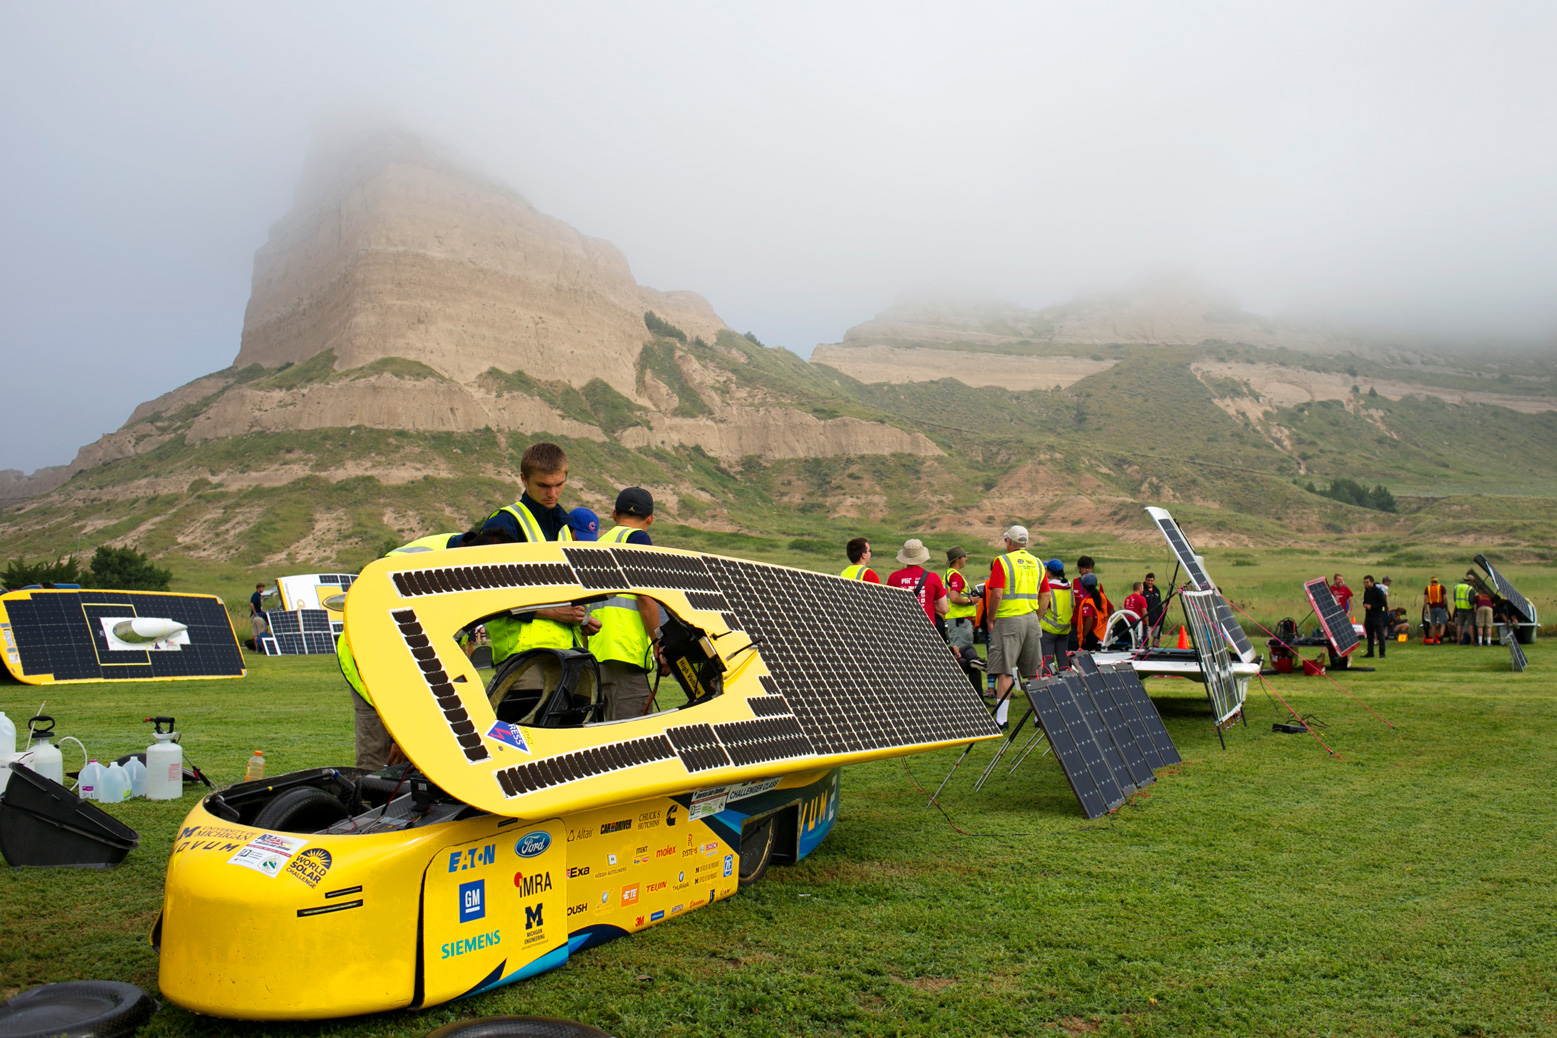 The team readies Novum for another day of racing in foggy Scotts Bluff. Photo: Akhil Kantipuly